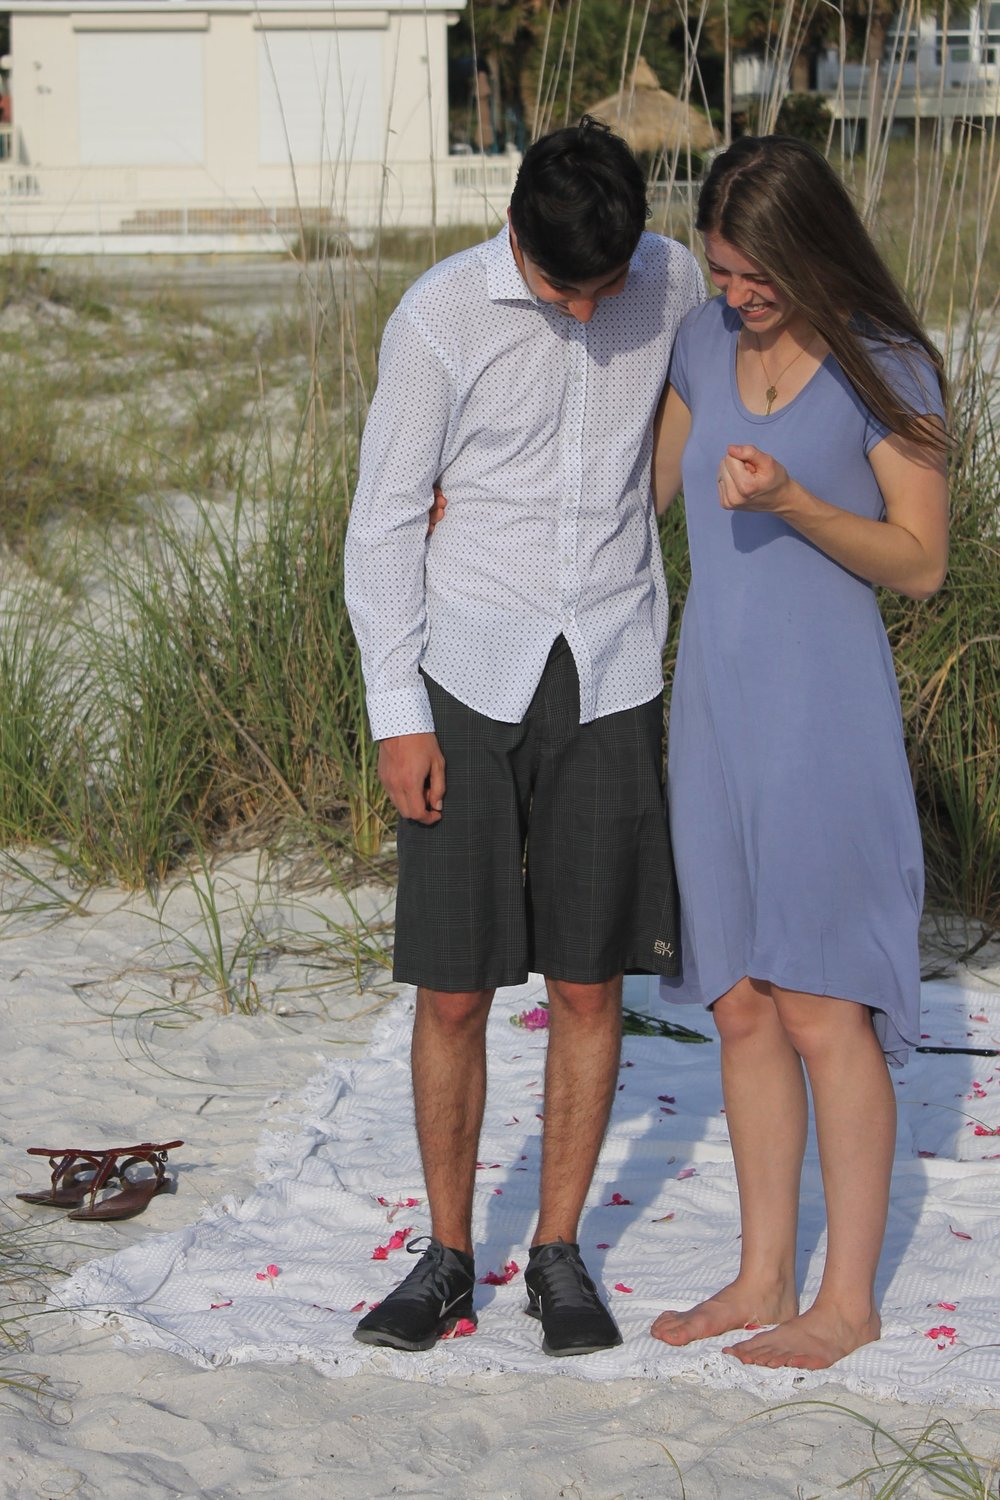 Taken moments after Steven proposed to me on the beach in Florida. I'm wearing an organic cotton dress by  Blue Canoe  (made in usa + focus on sustainable materials). Plus, there's that  Giving Keys  necklace again.